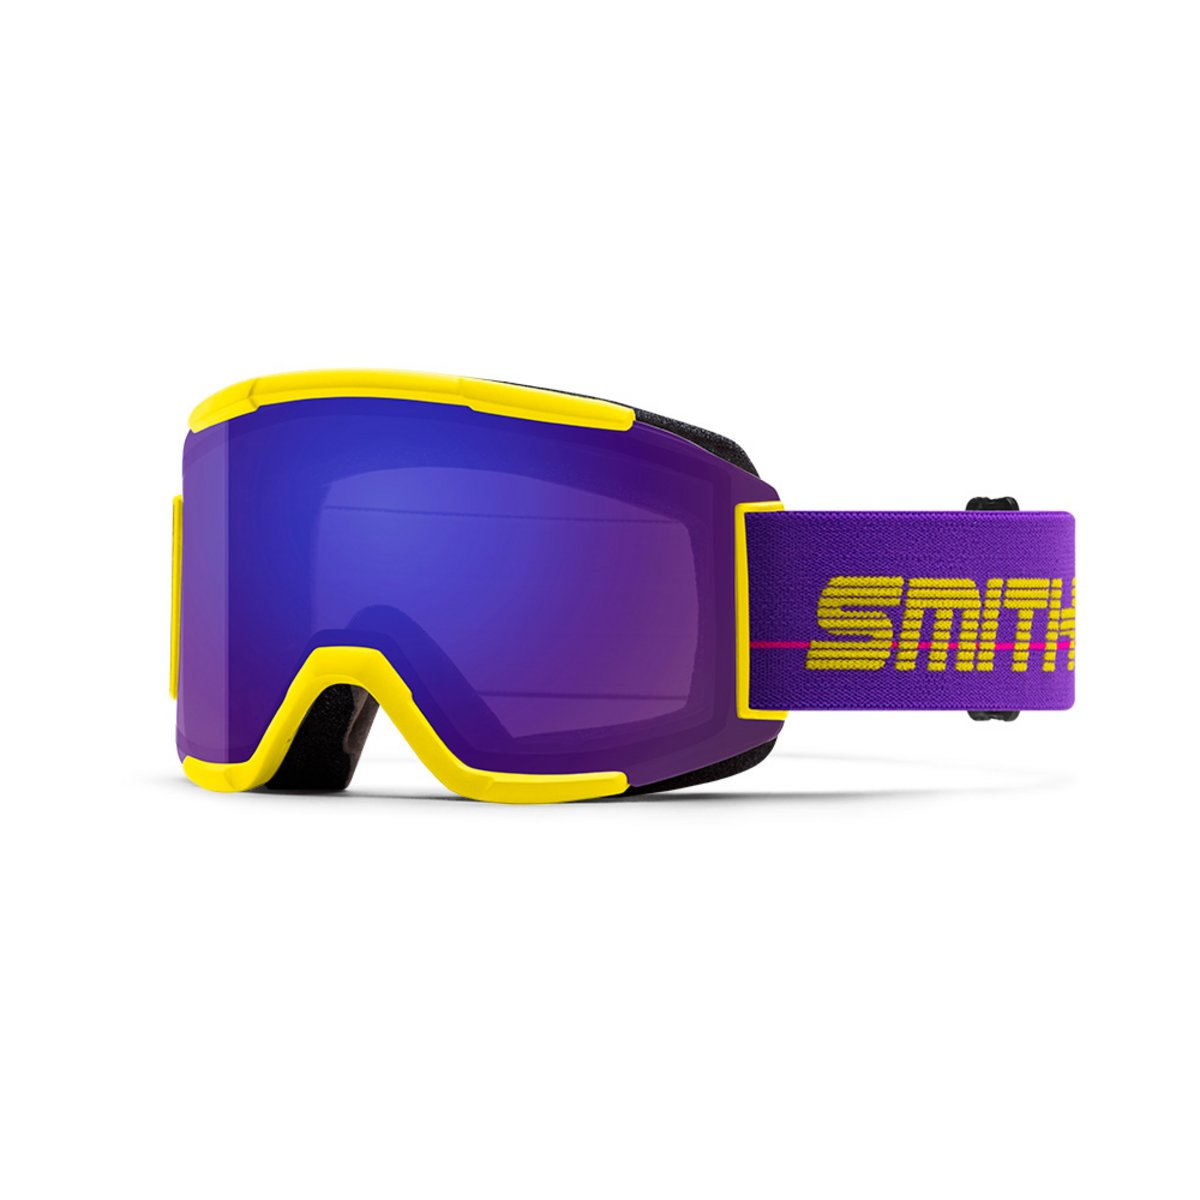 Smith Squad Yellow 93 / ChromaPop Everyday Violet Mirror + Yellow Goggles 2019 / 2020 0